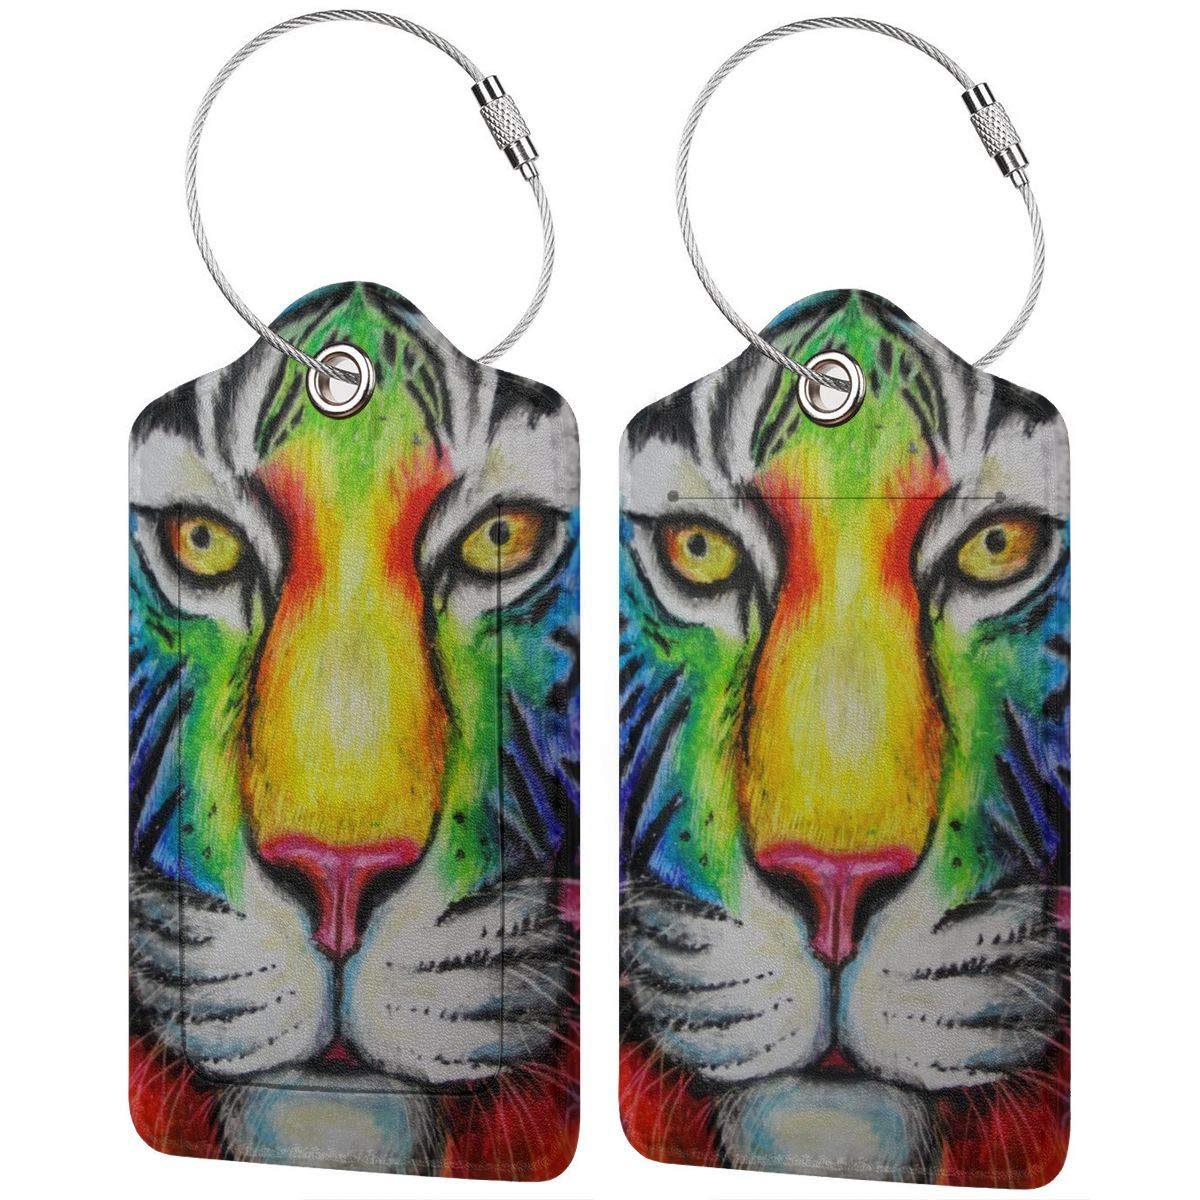 Tiger Colorful Graphic Head Travel Luggage Tags With Full Privacy Cover Leather Case And Stainless Steel Loop